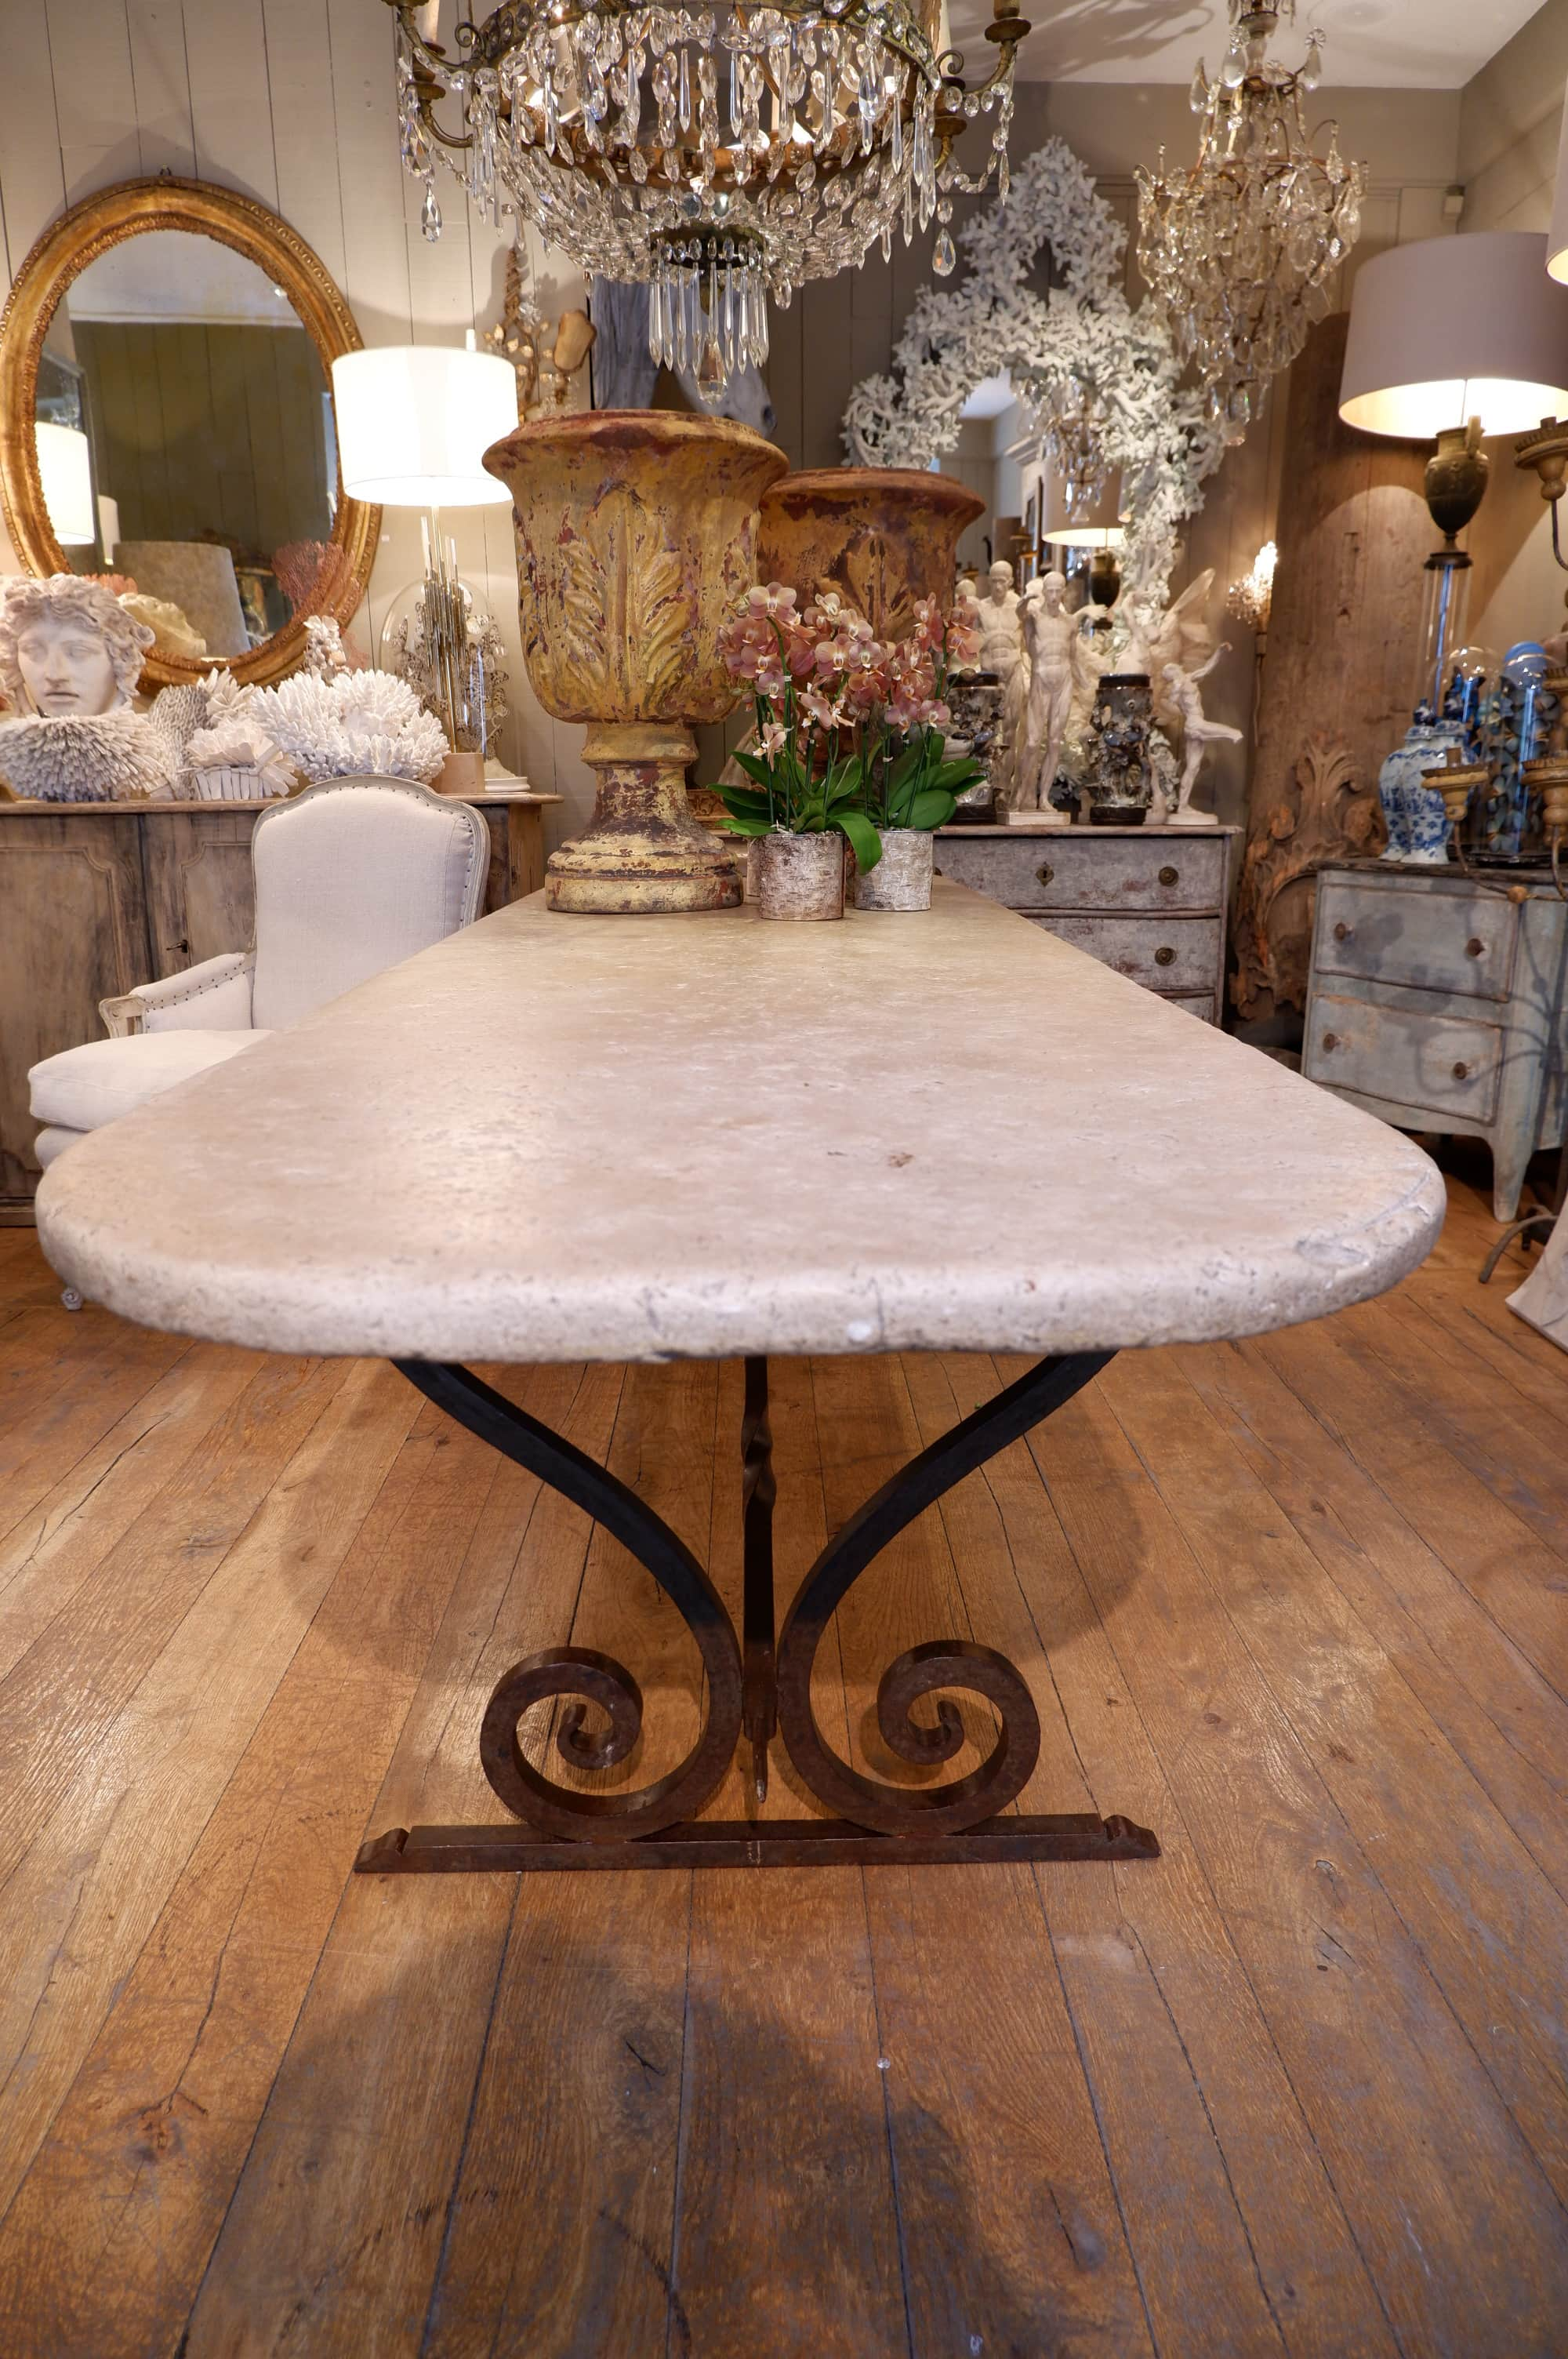 GRANDE TABLE EN PIERRE MARBRIERE EPOQUE XVIIIe & BASE EN FER FORGE